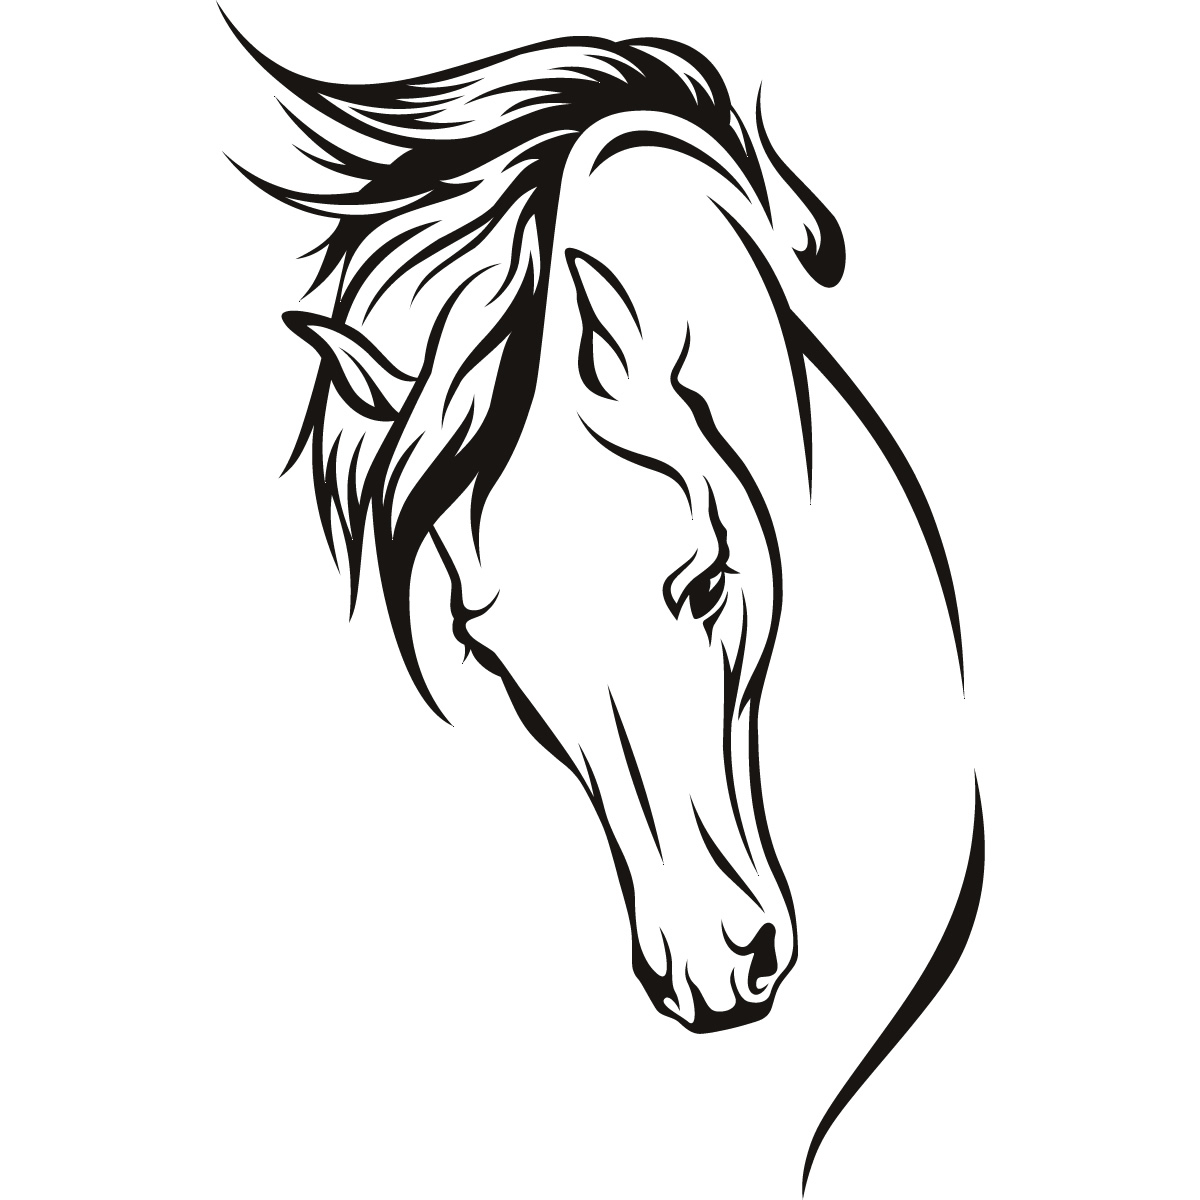 1200x1200 Simple Horse Head Drawing Easy+Horse+Drawings Simple Horse Head